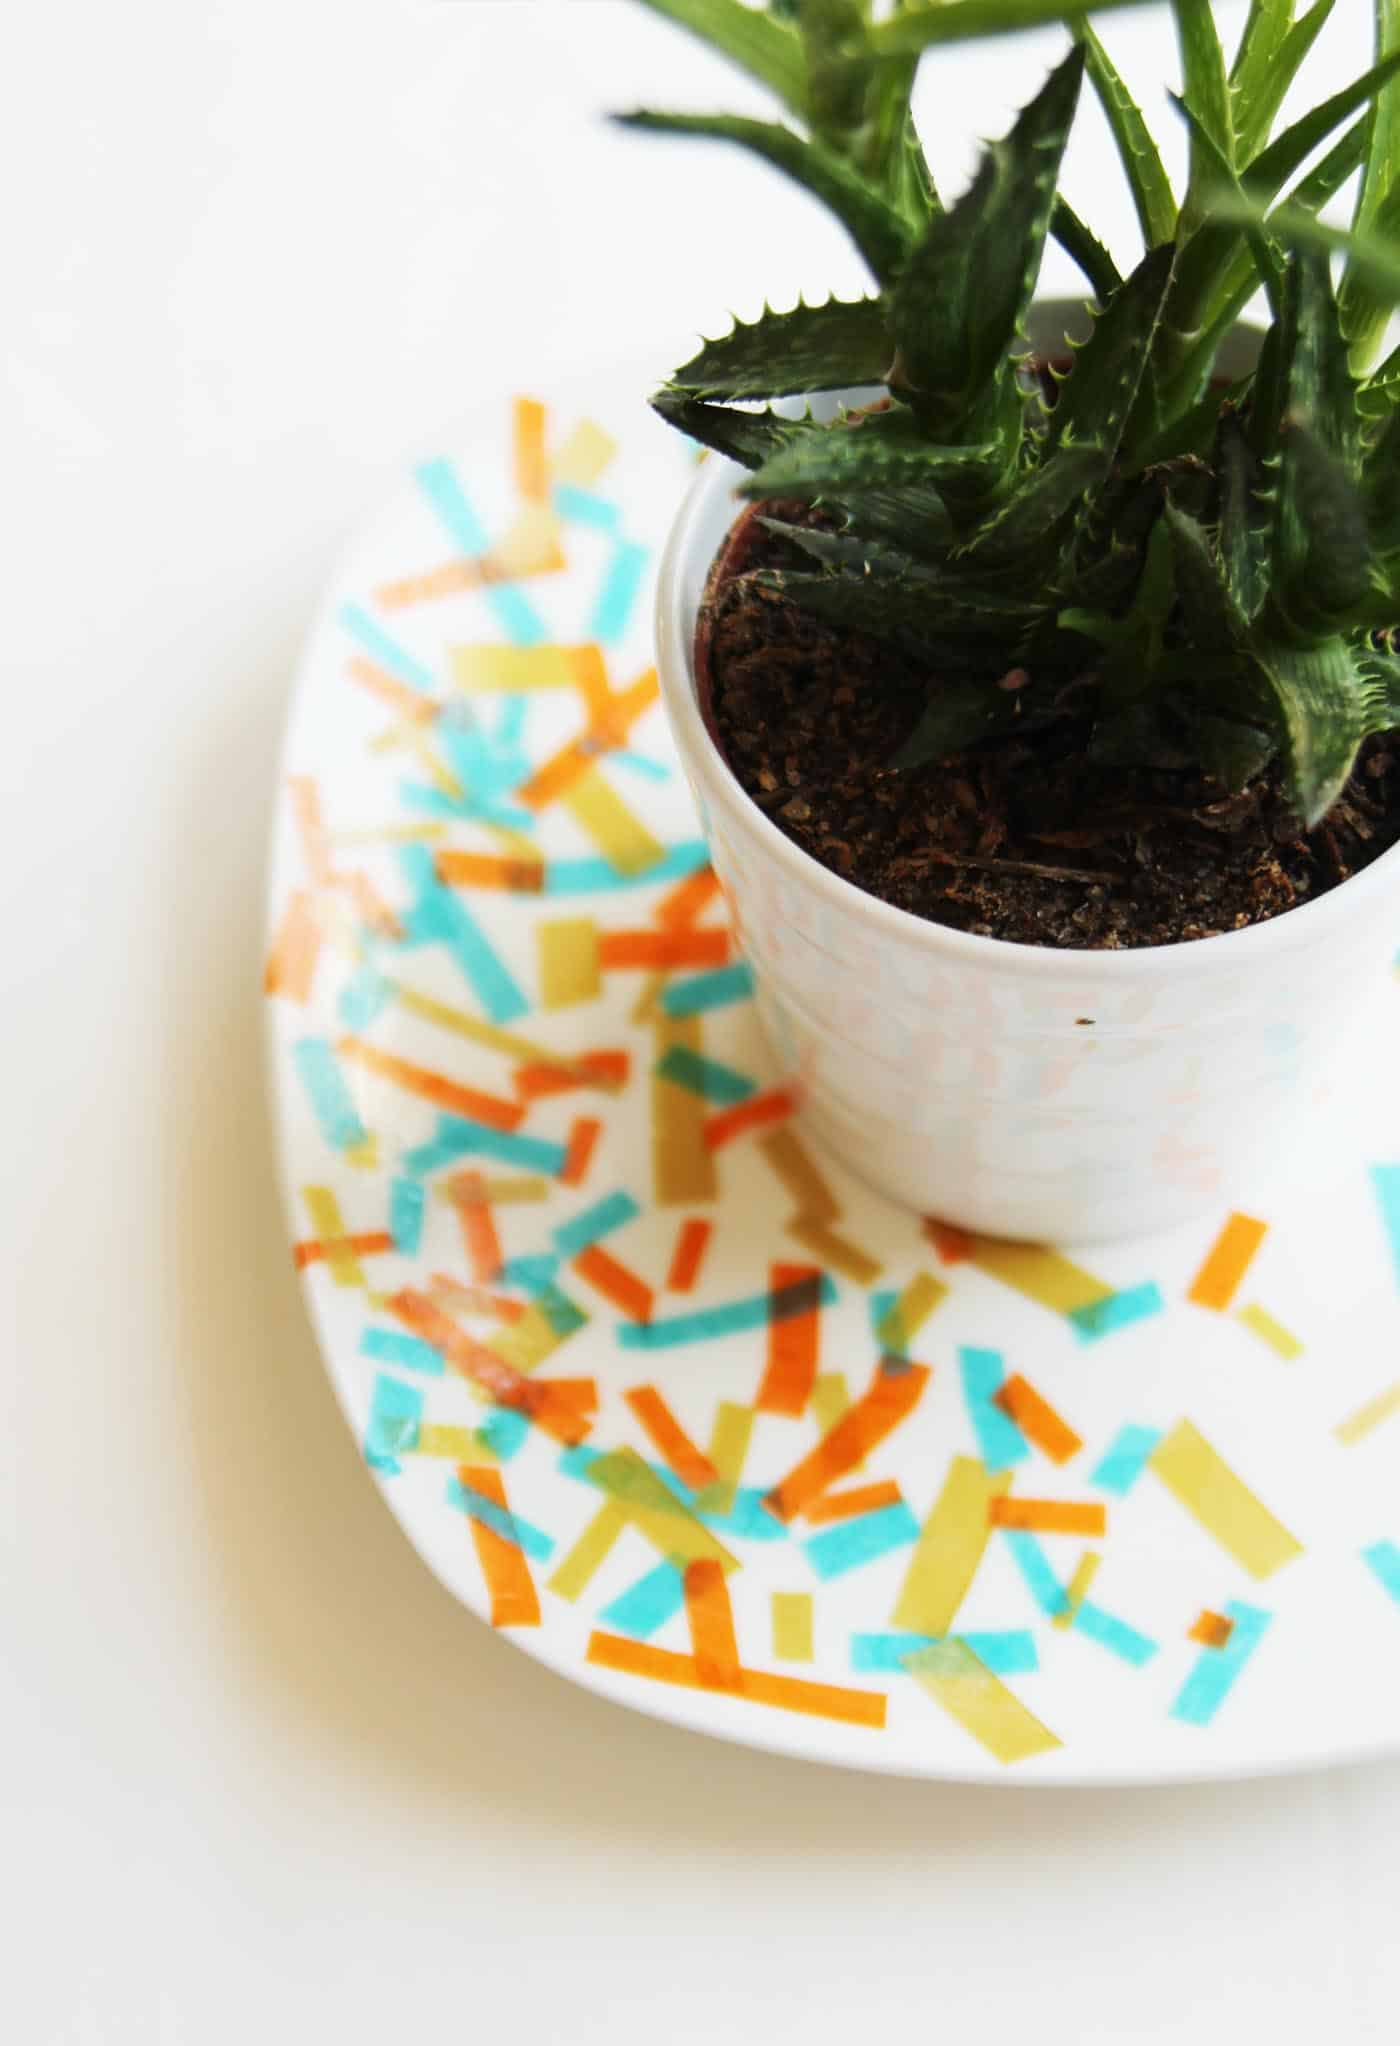 Use various colors of tissue paper and Dishwasher Safe Mod Podge to decorate a plate in this unique dollar store craft. Perfect for parties!